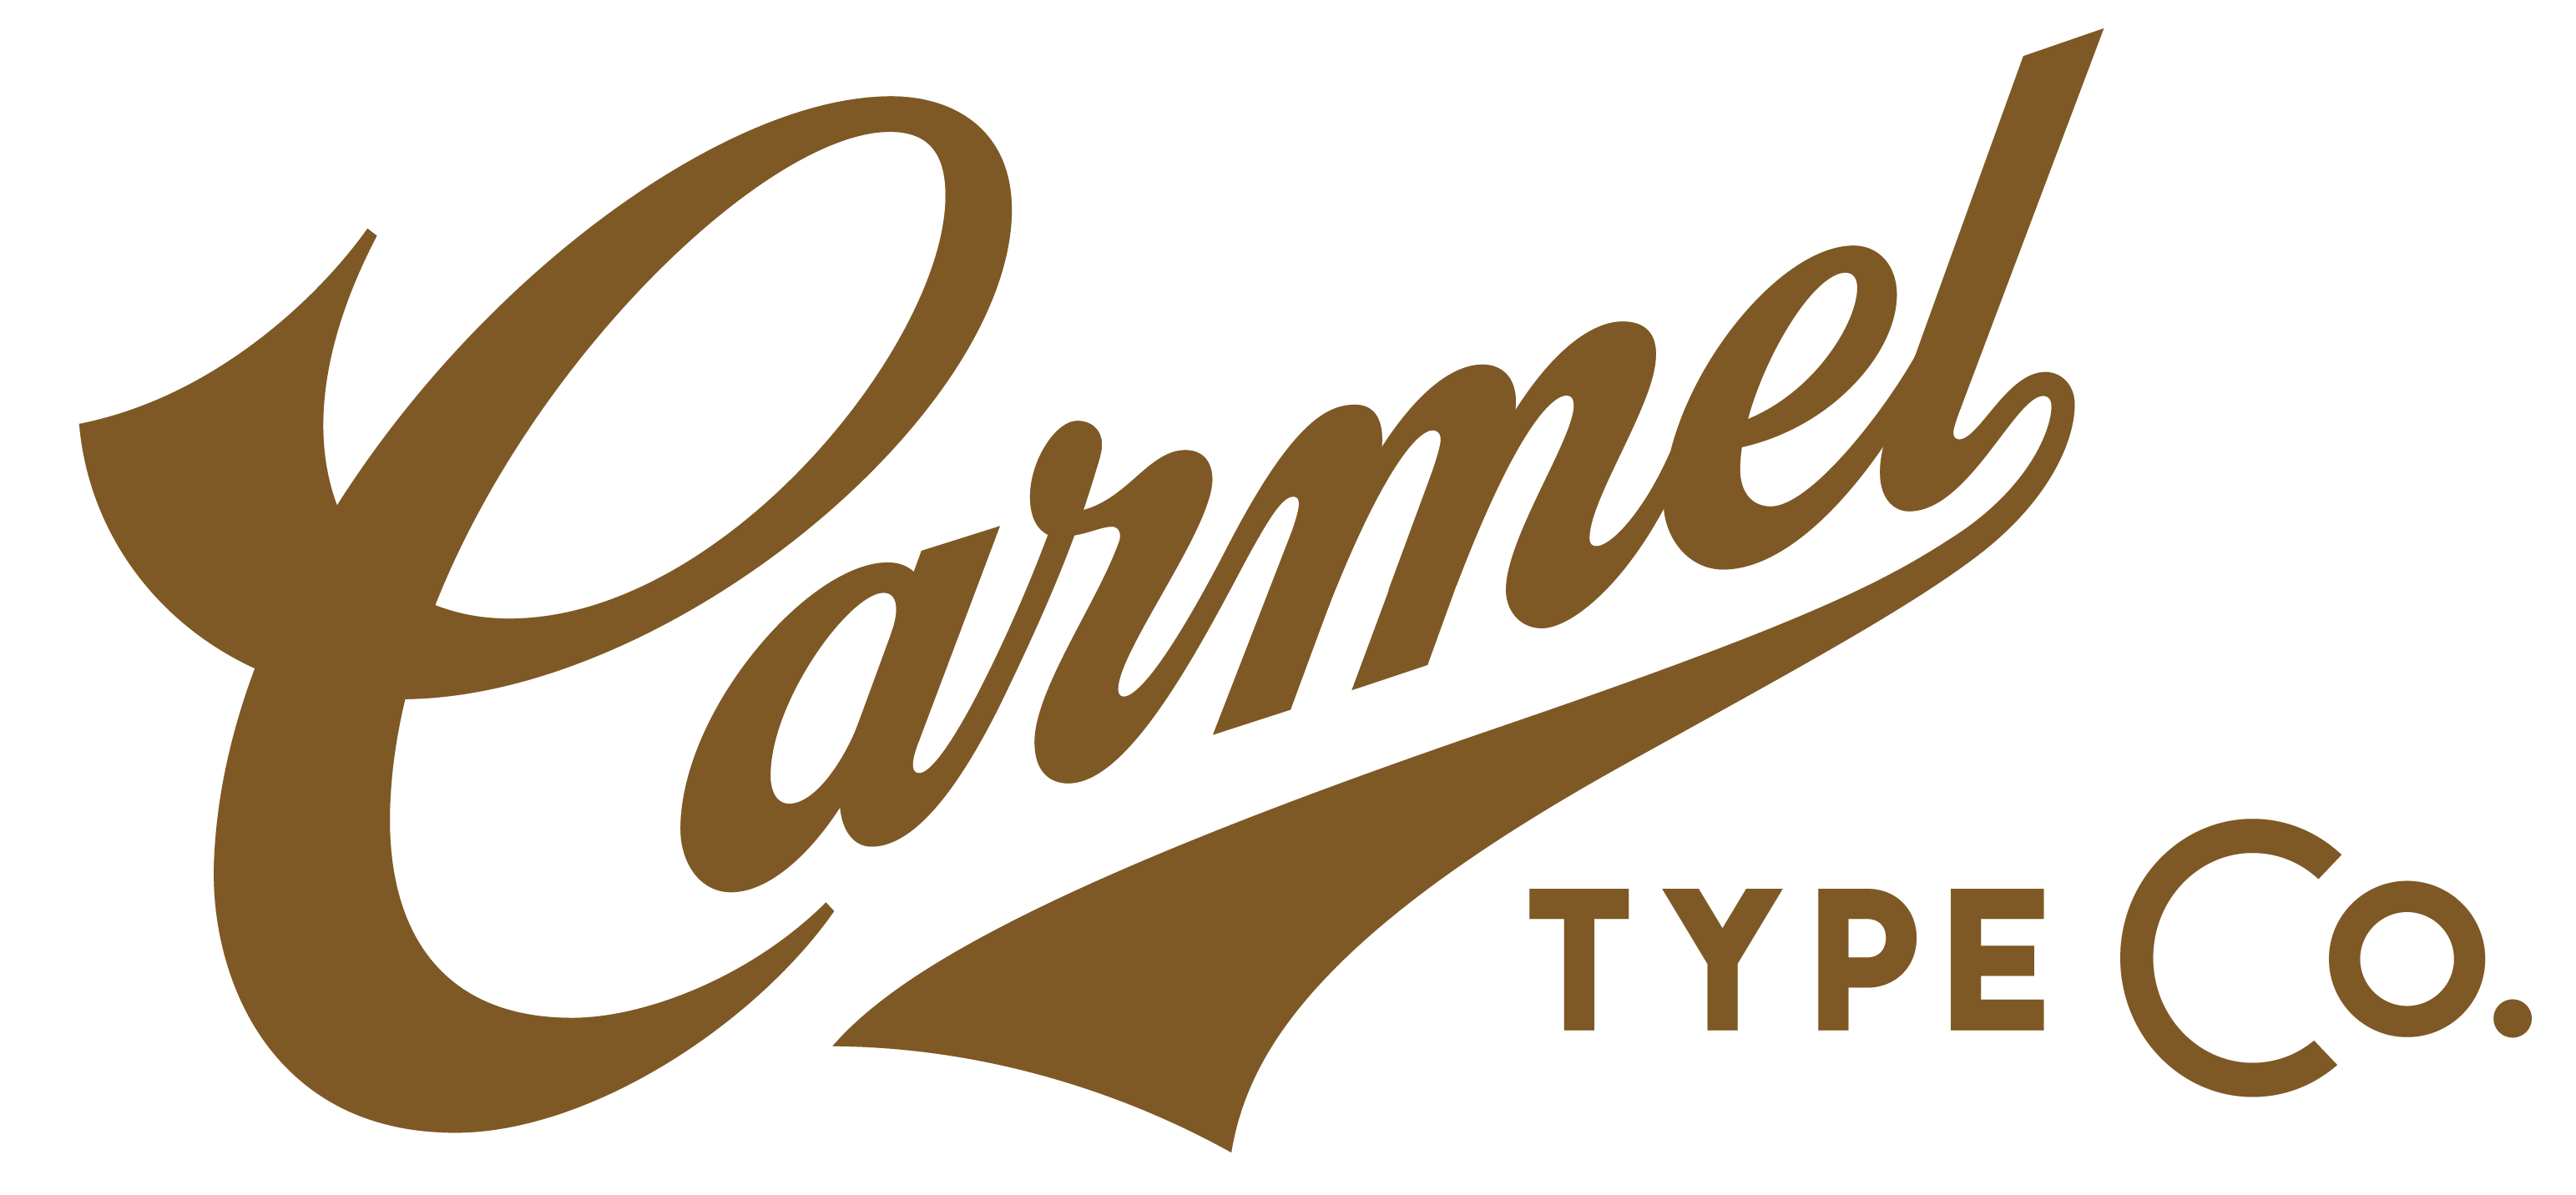 Carmel Type Co.